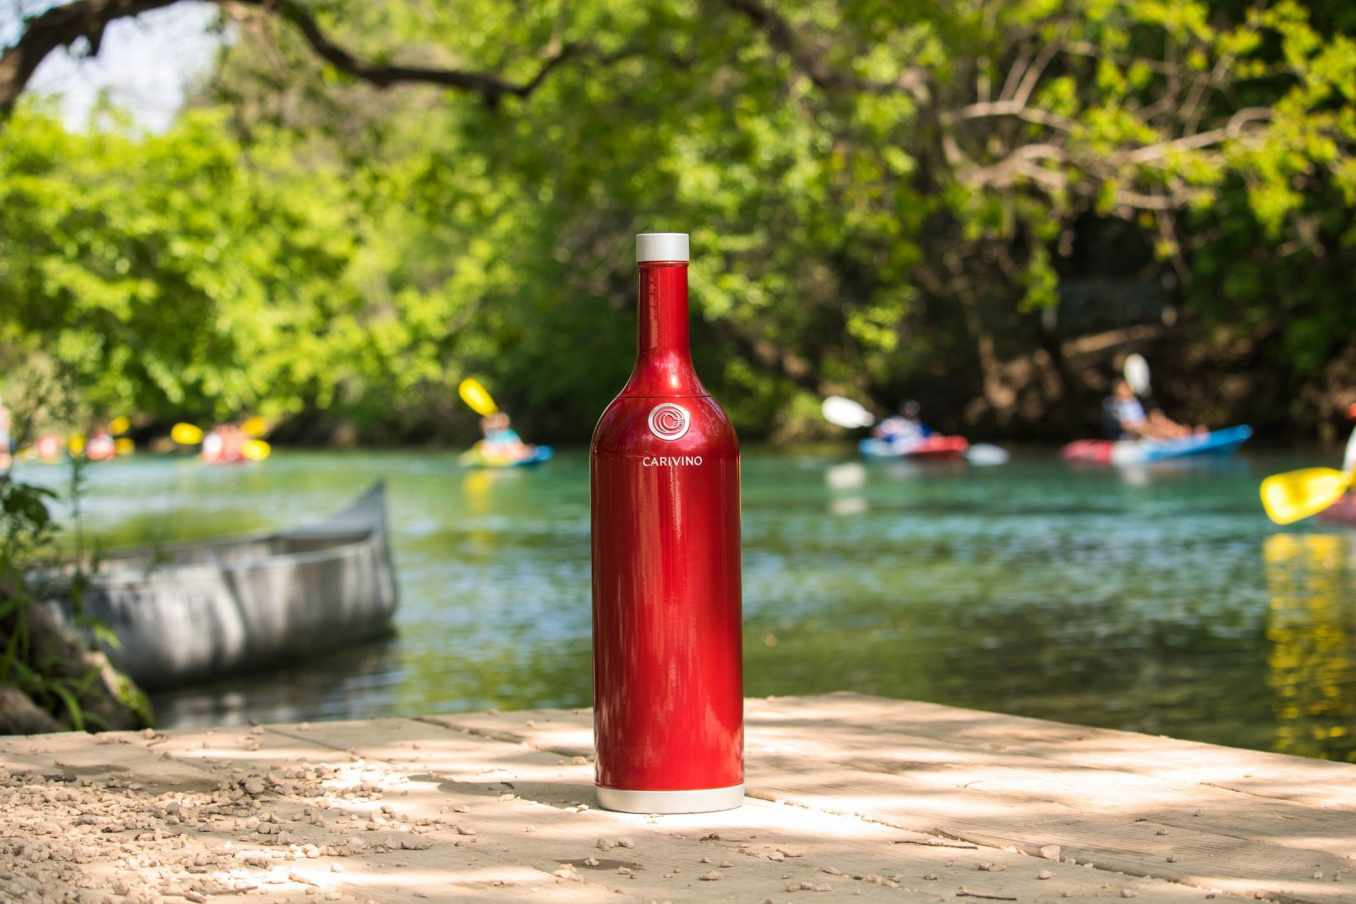 World's First Insulated Outdoor Wine Bottle With Glasses Inside